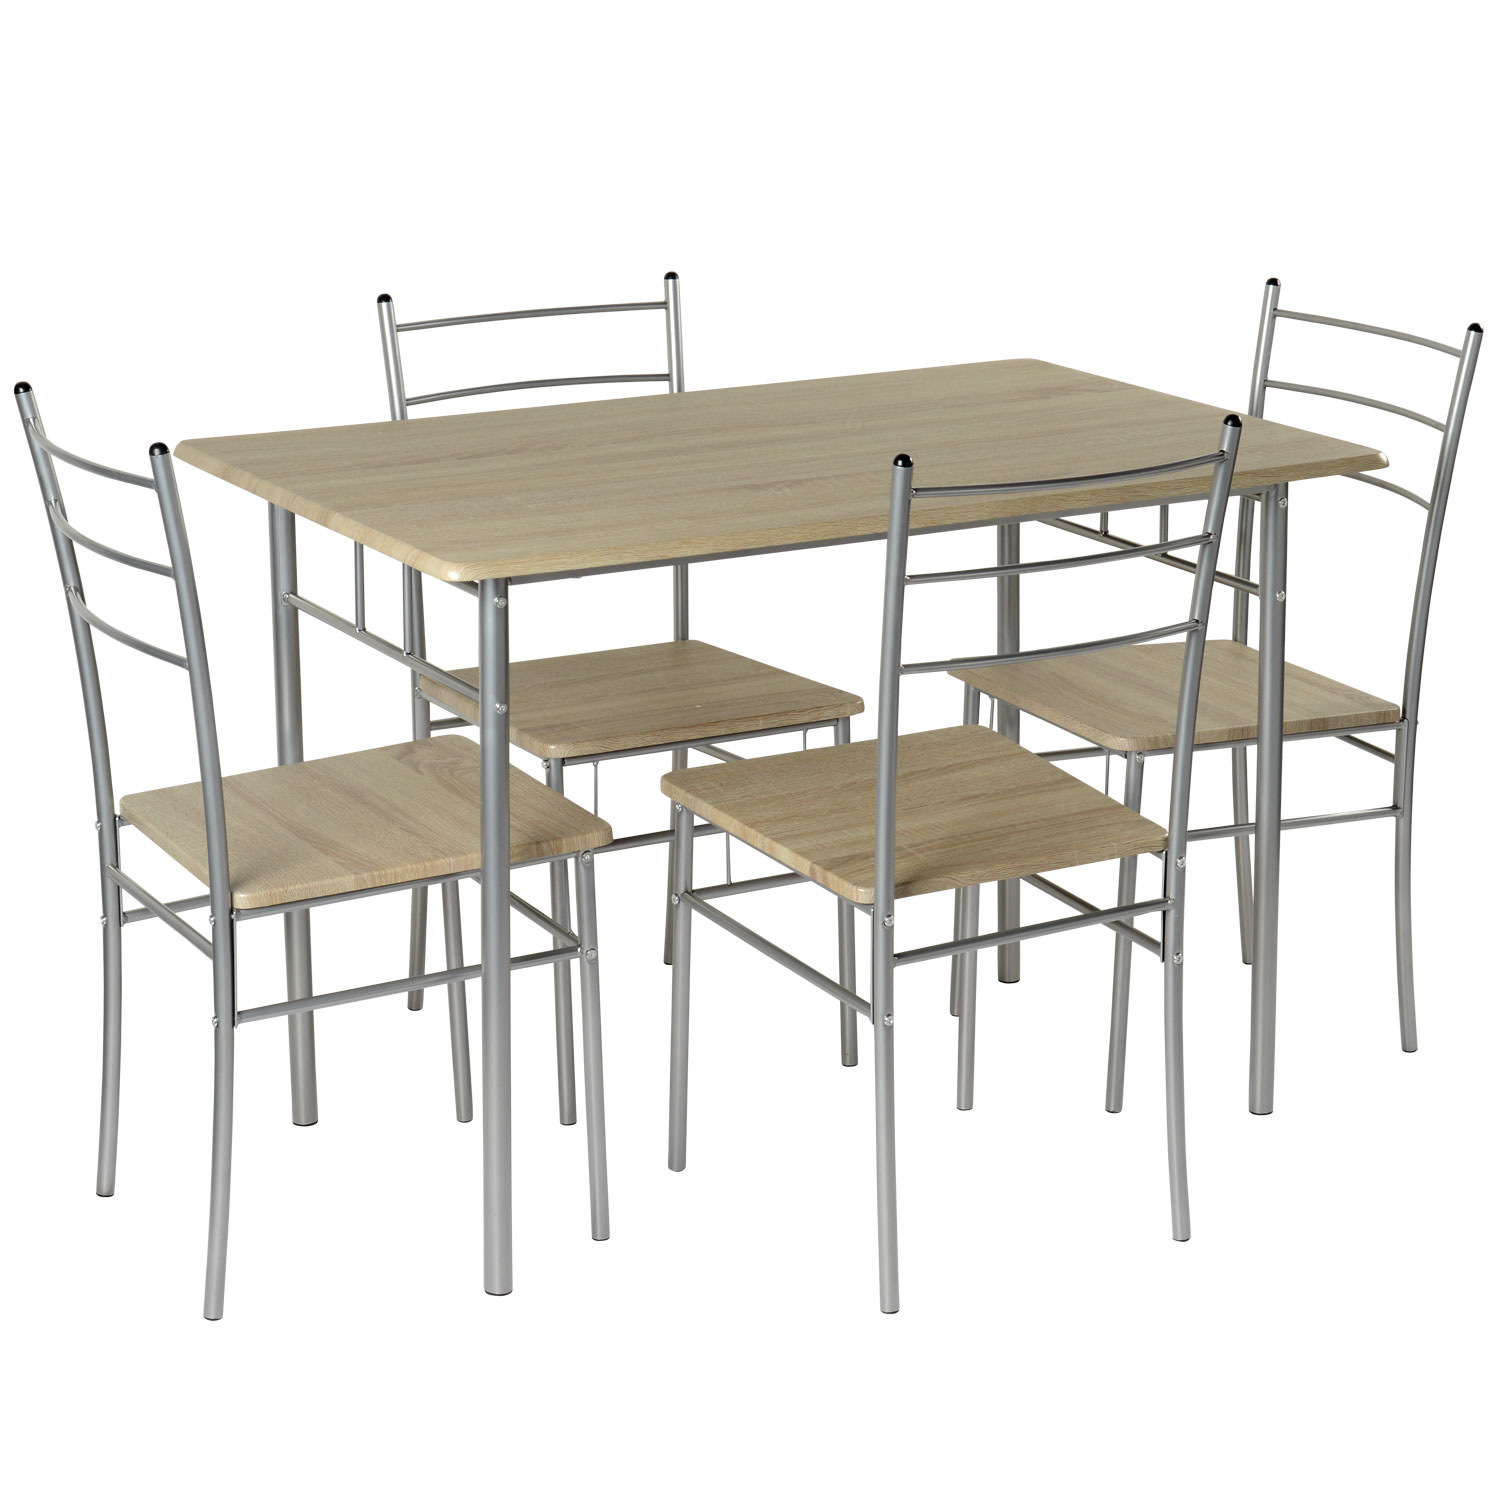 Dining table 4 chairs modern kitchen black silver 5pc breakfast bar chairs ebay - Silver dining table and chairs ...